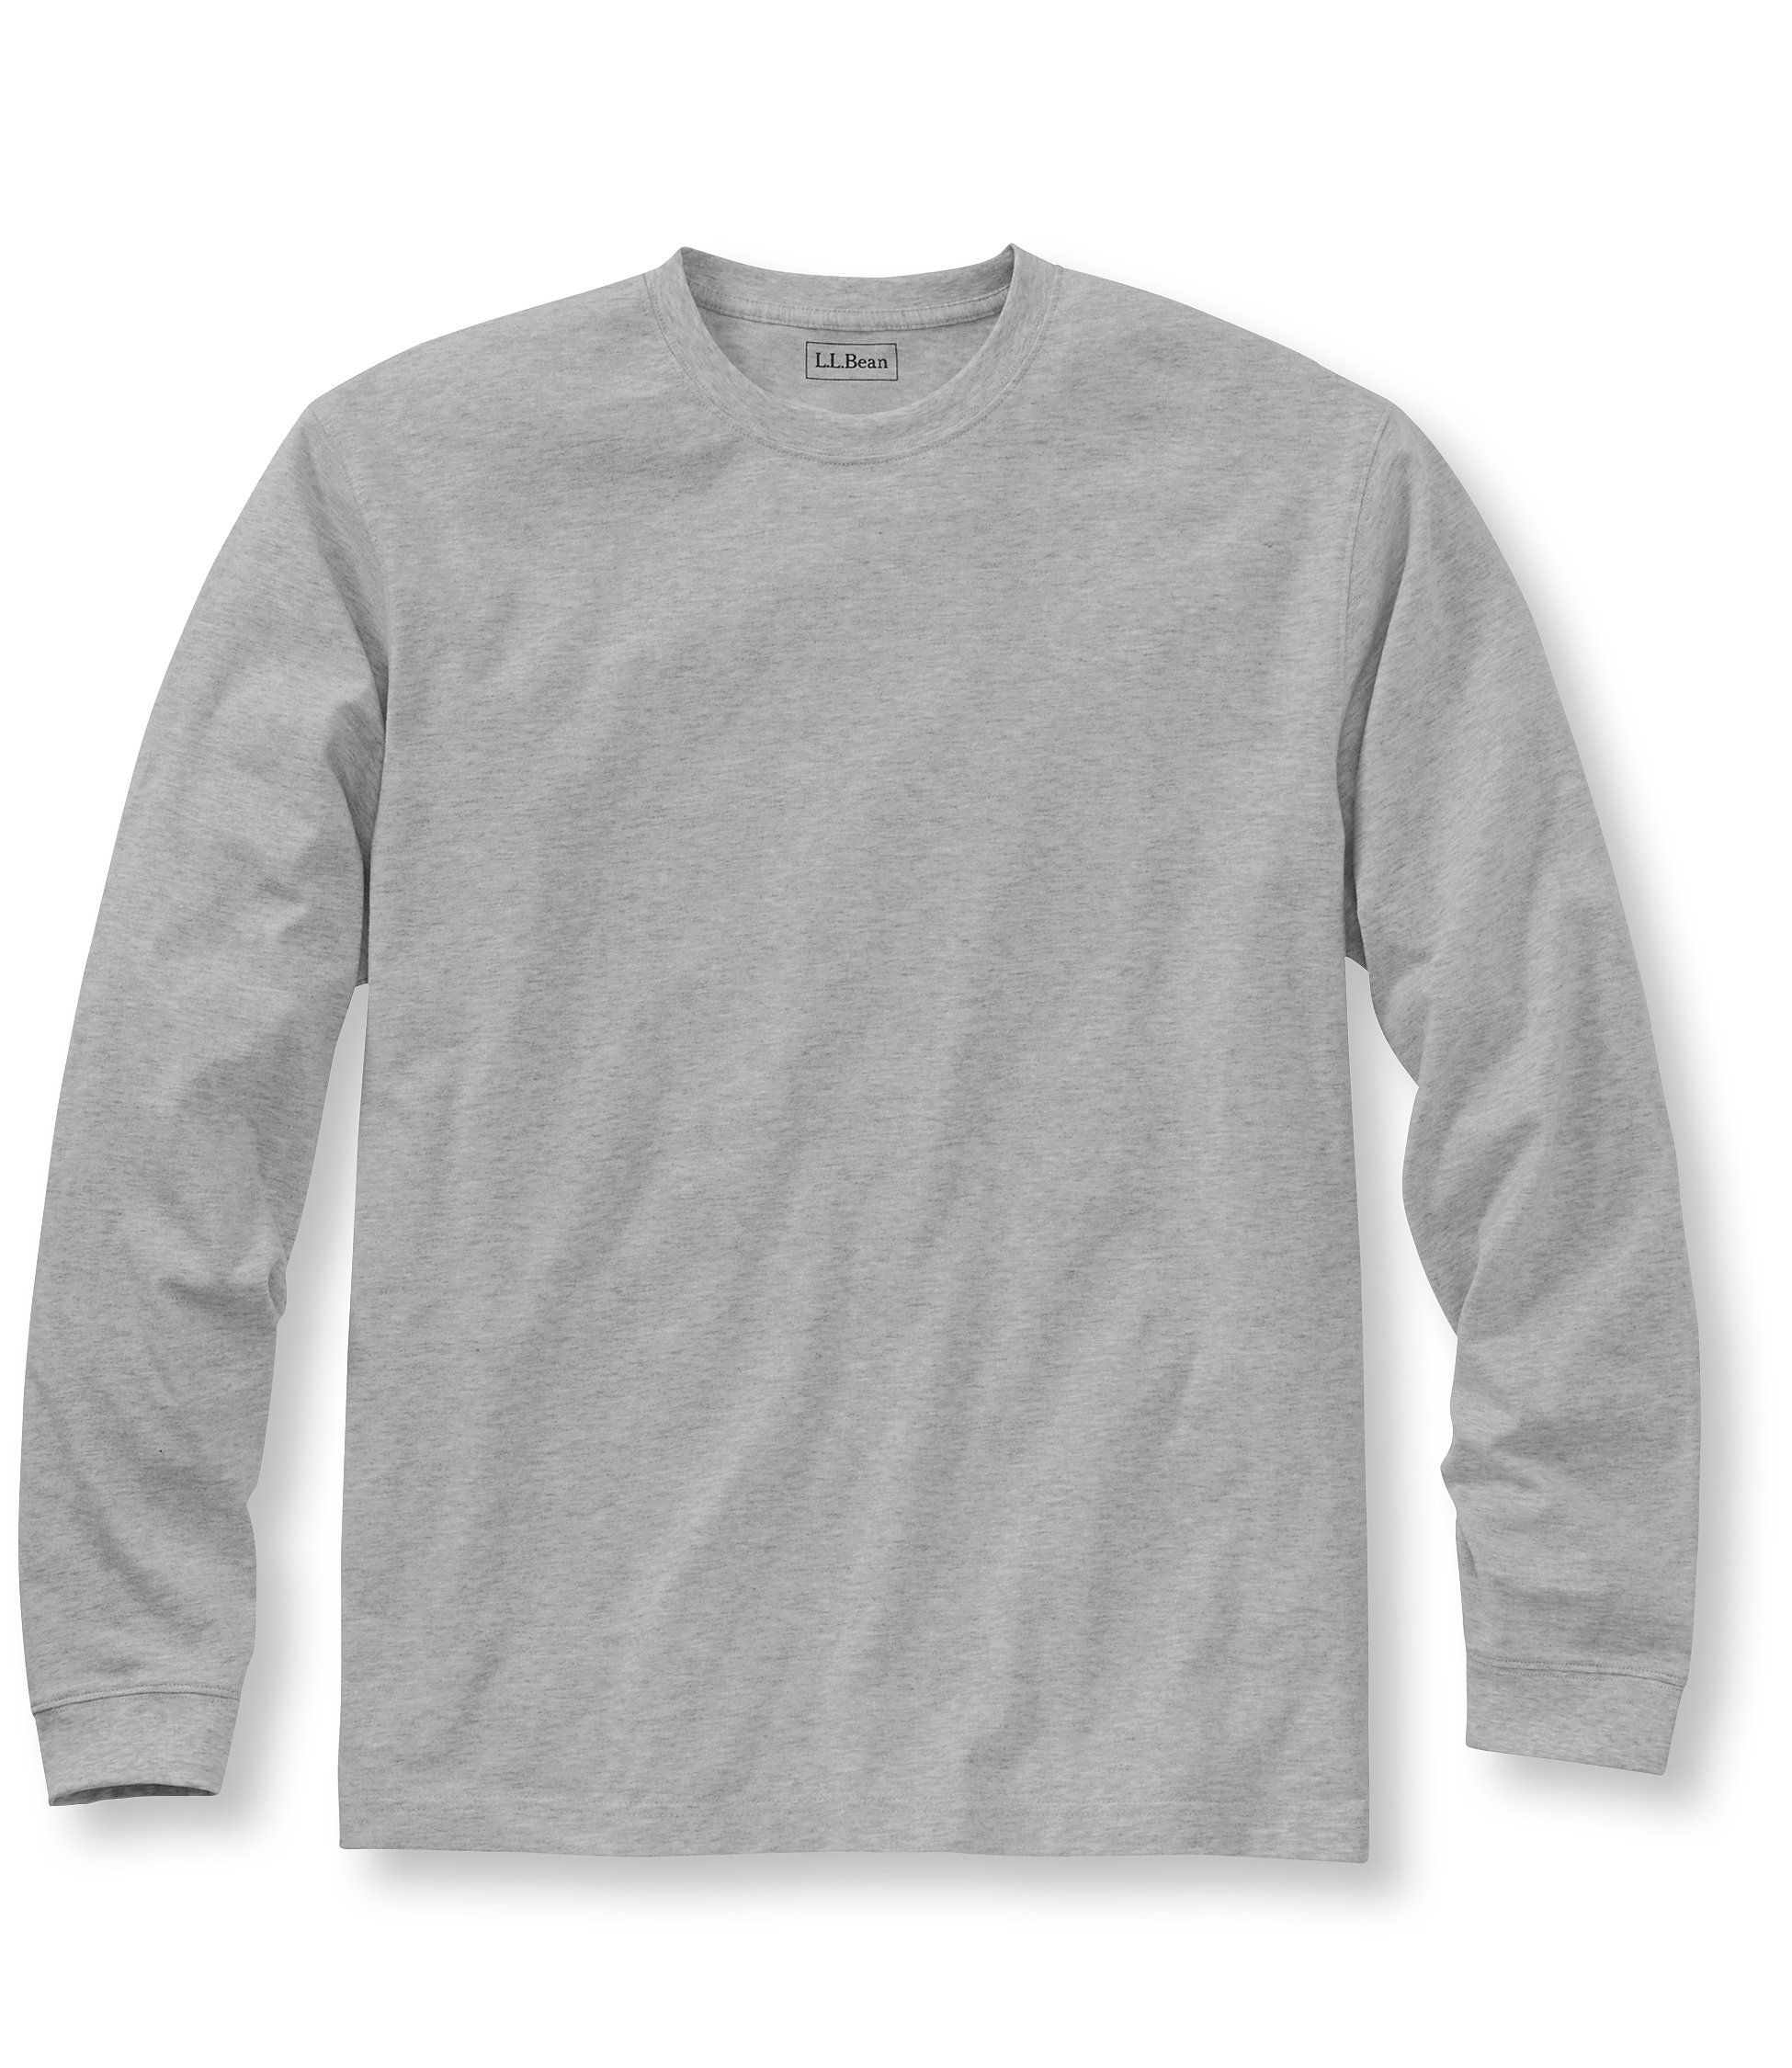 af016789dfd0 Carefree Unshrinkable Tee, Traditional Fit Long-Sleeve Mens Tees,  Traditional, Mens Fashion